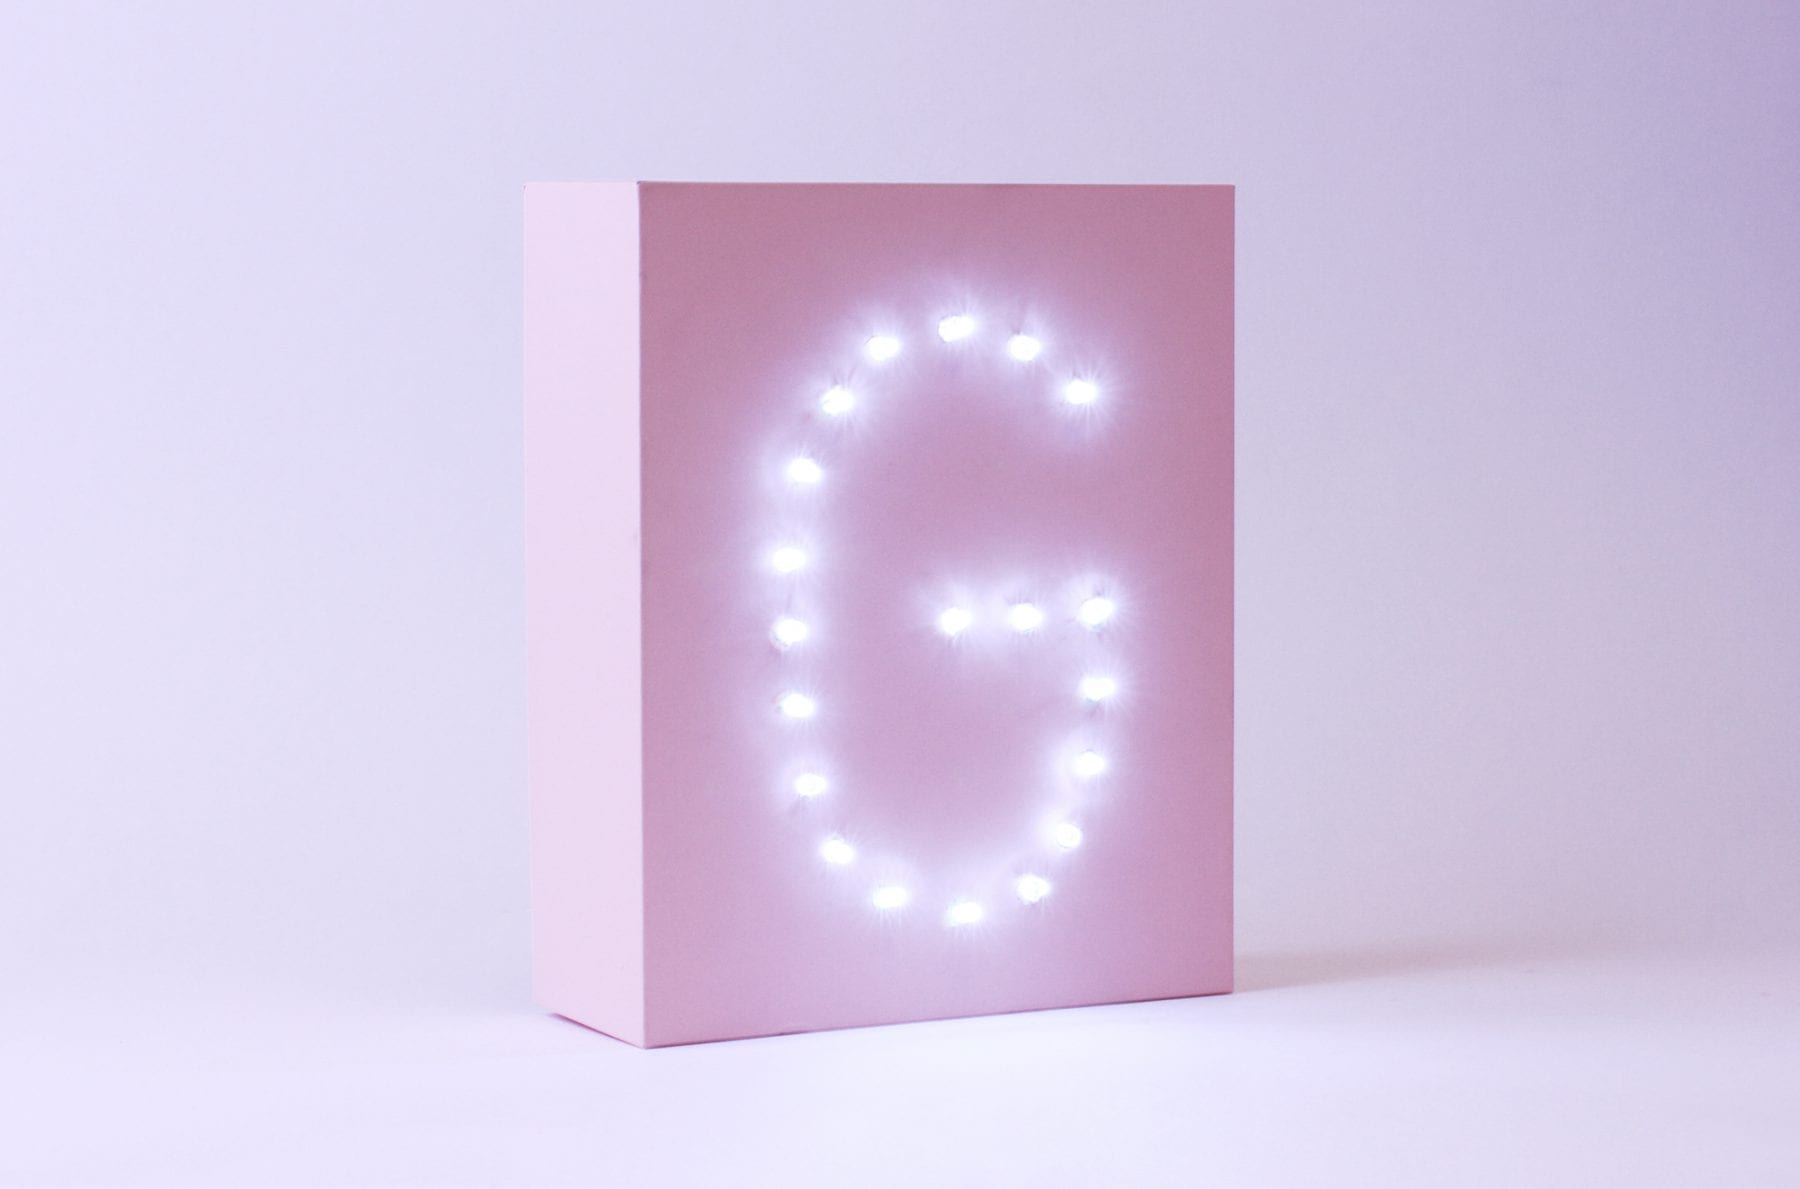 Upscale Your GLOSSYBOX Into A Personalised Letter Light